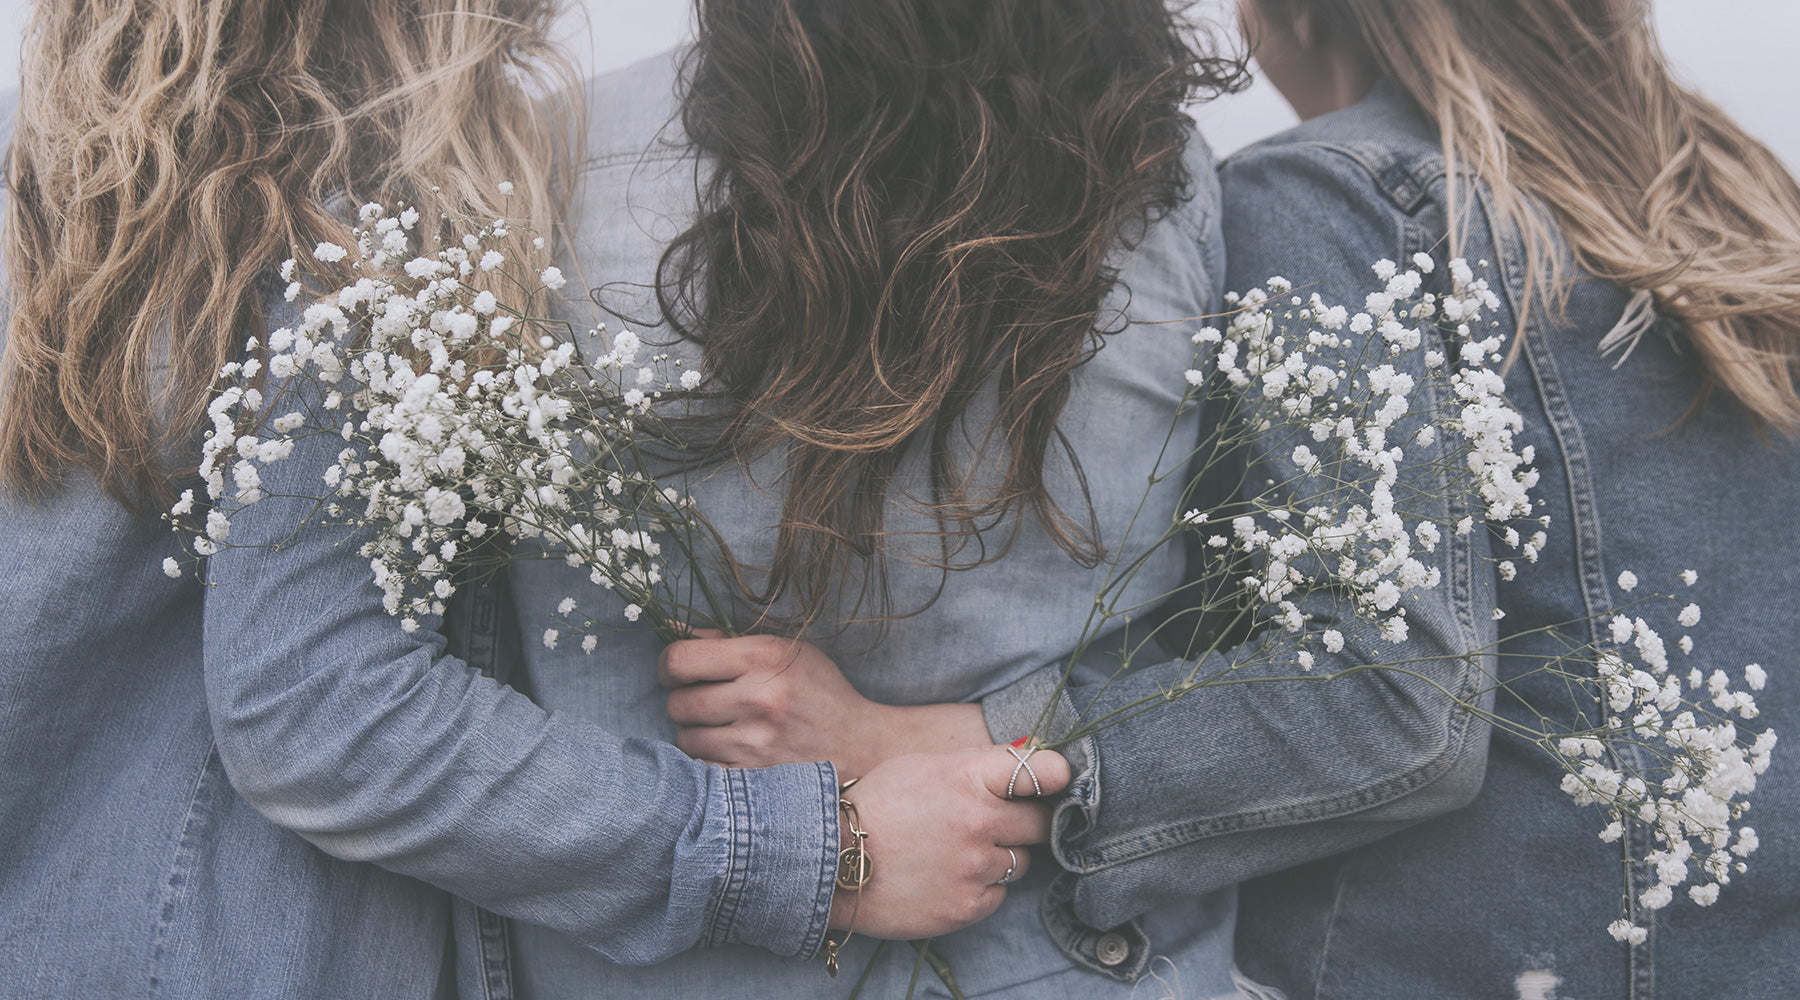 Women hugging and holding flowers